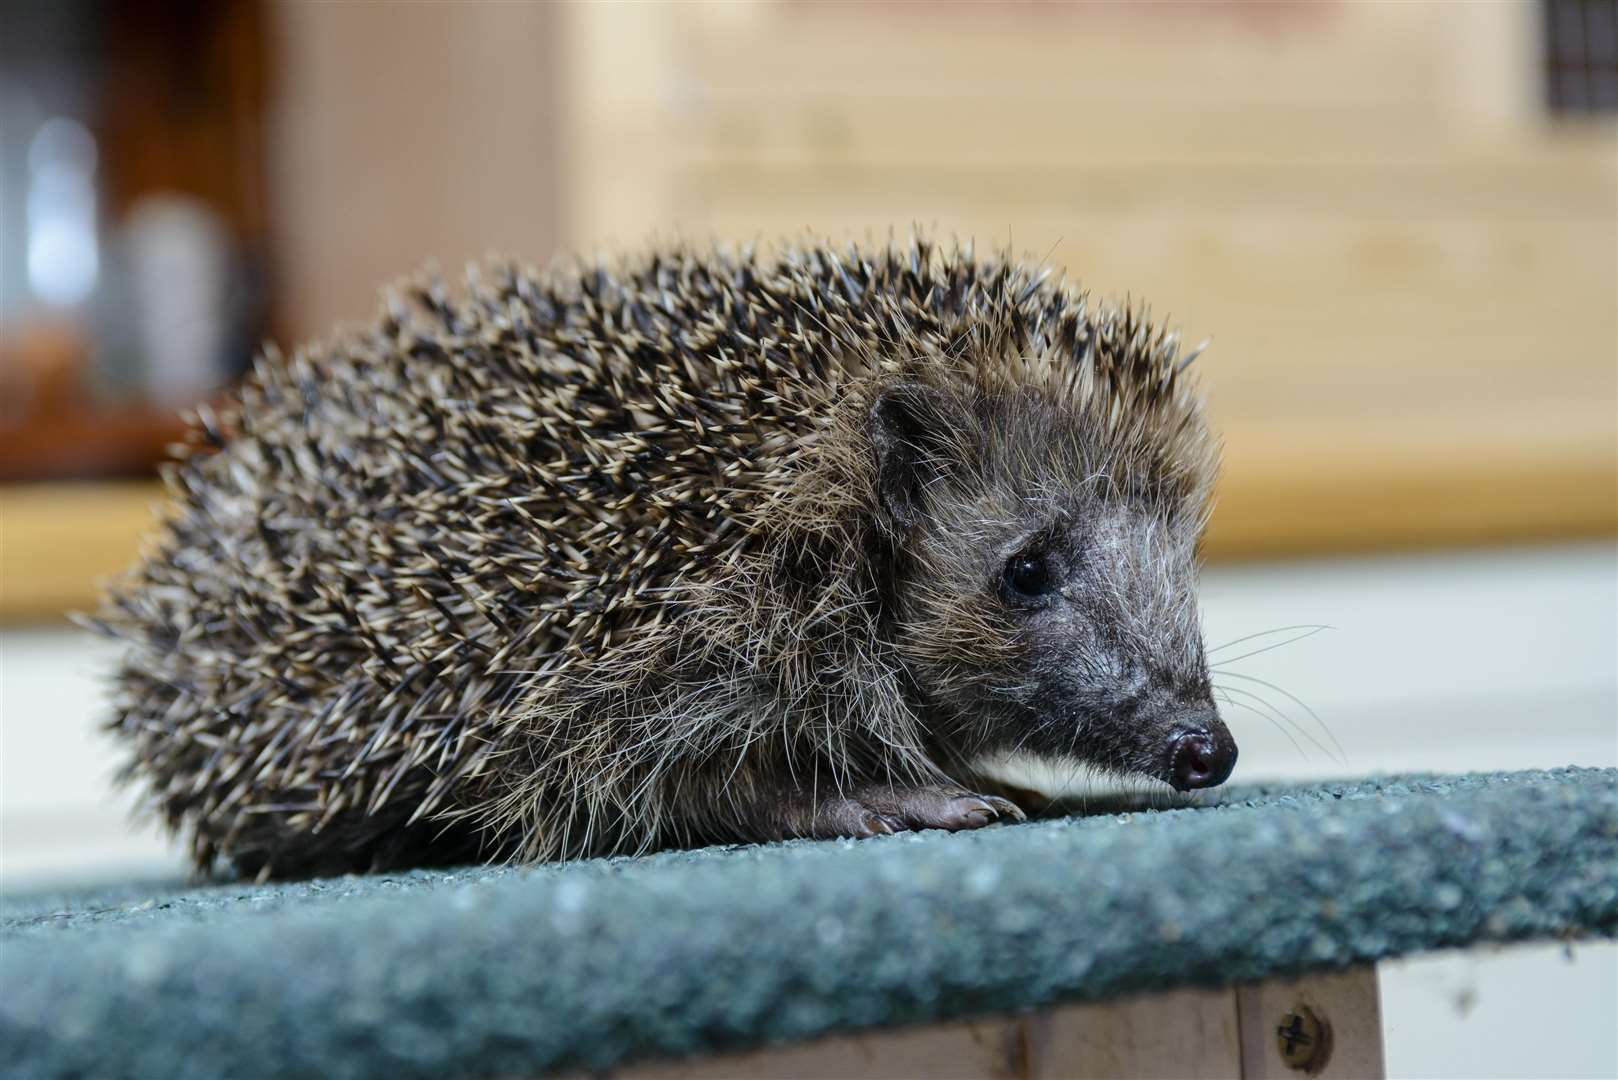 NOCTURNAL: Hedgehogs sleep in the day and only come out at night.